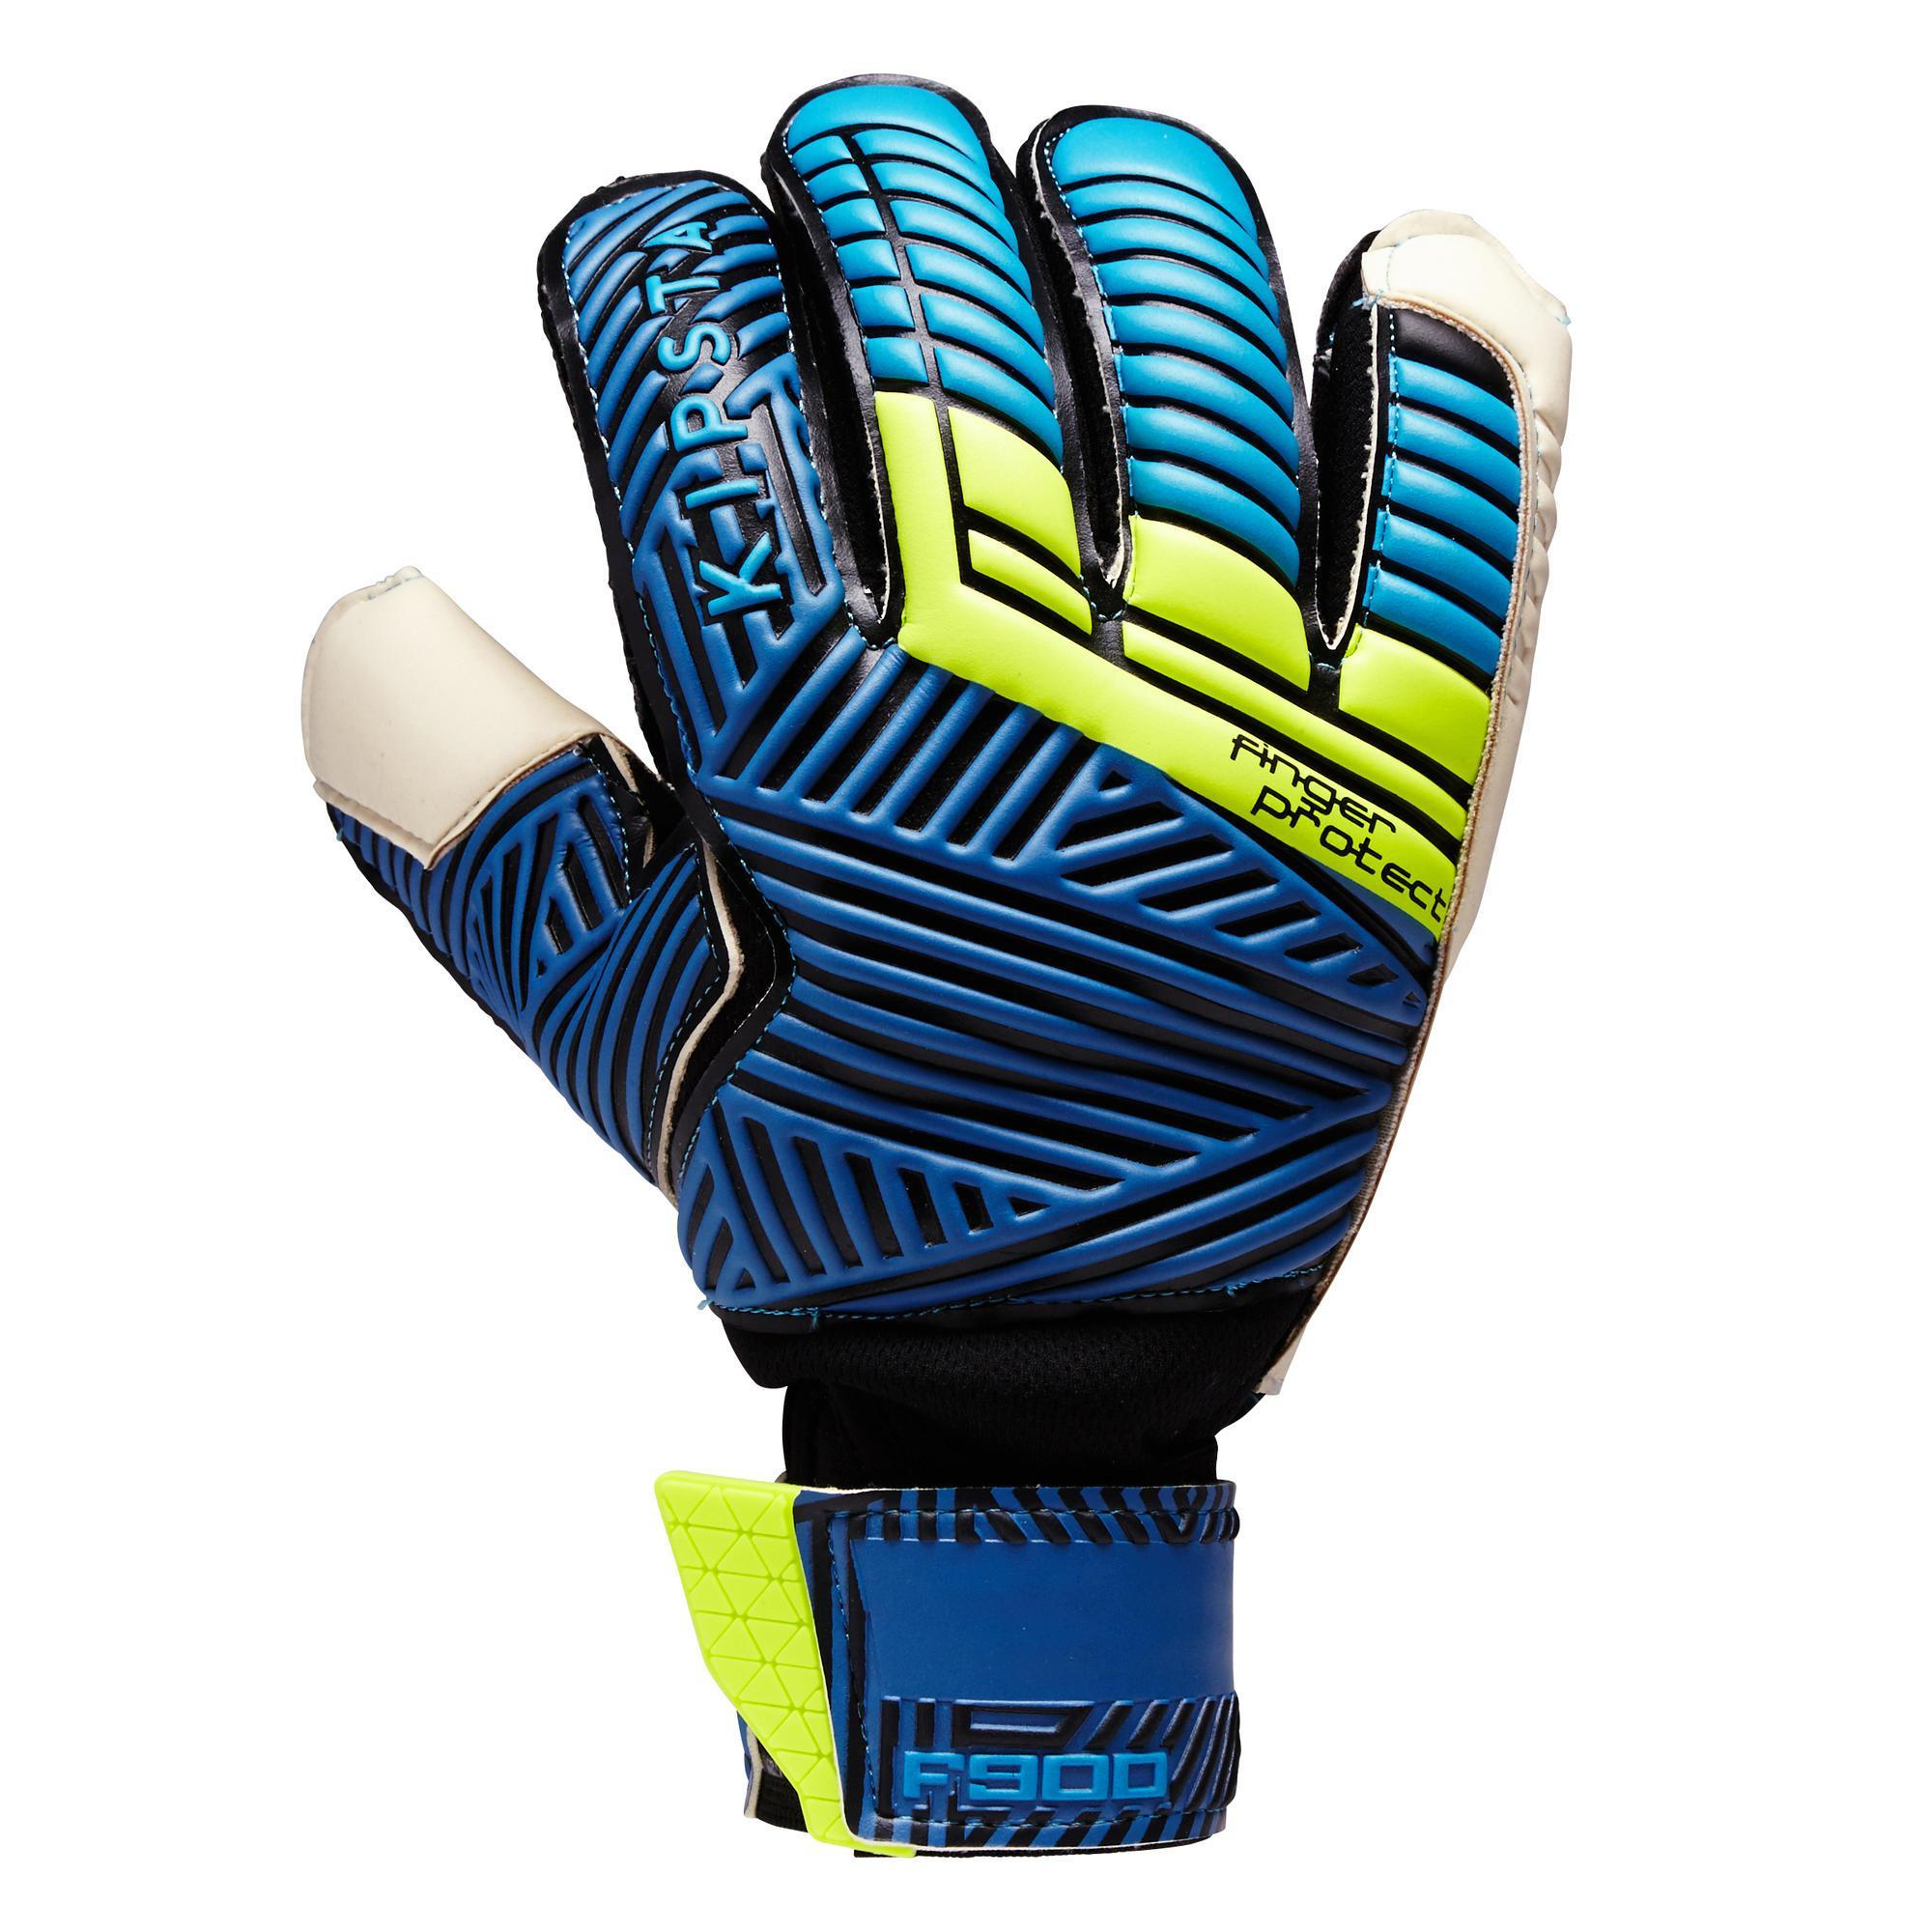 Kipsta Keepershandschoenen F900 finger protect blauw/geel